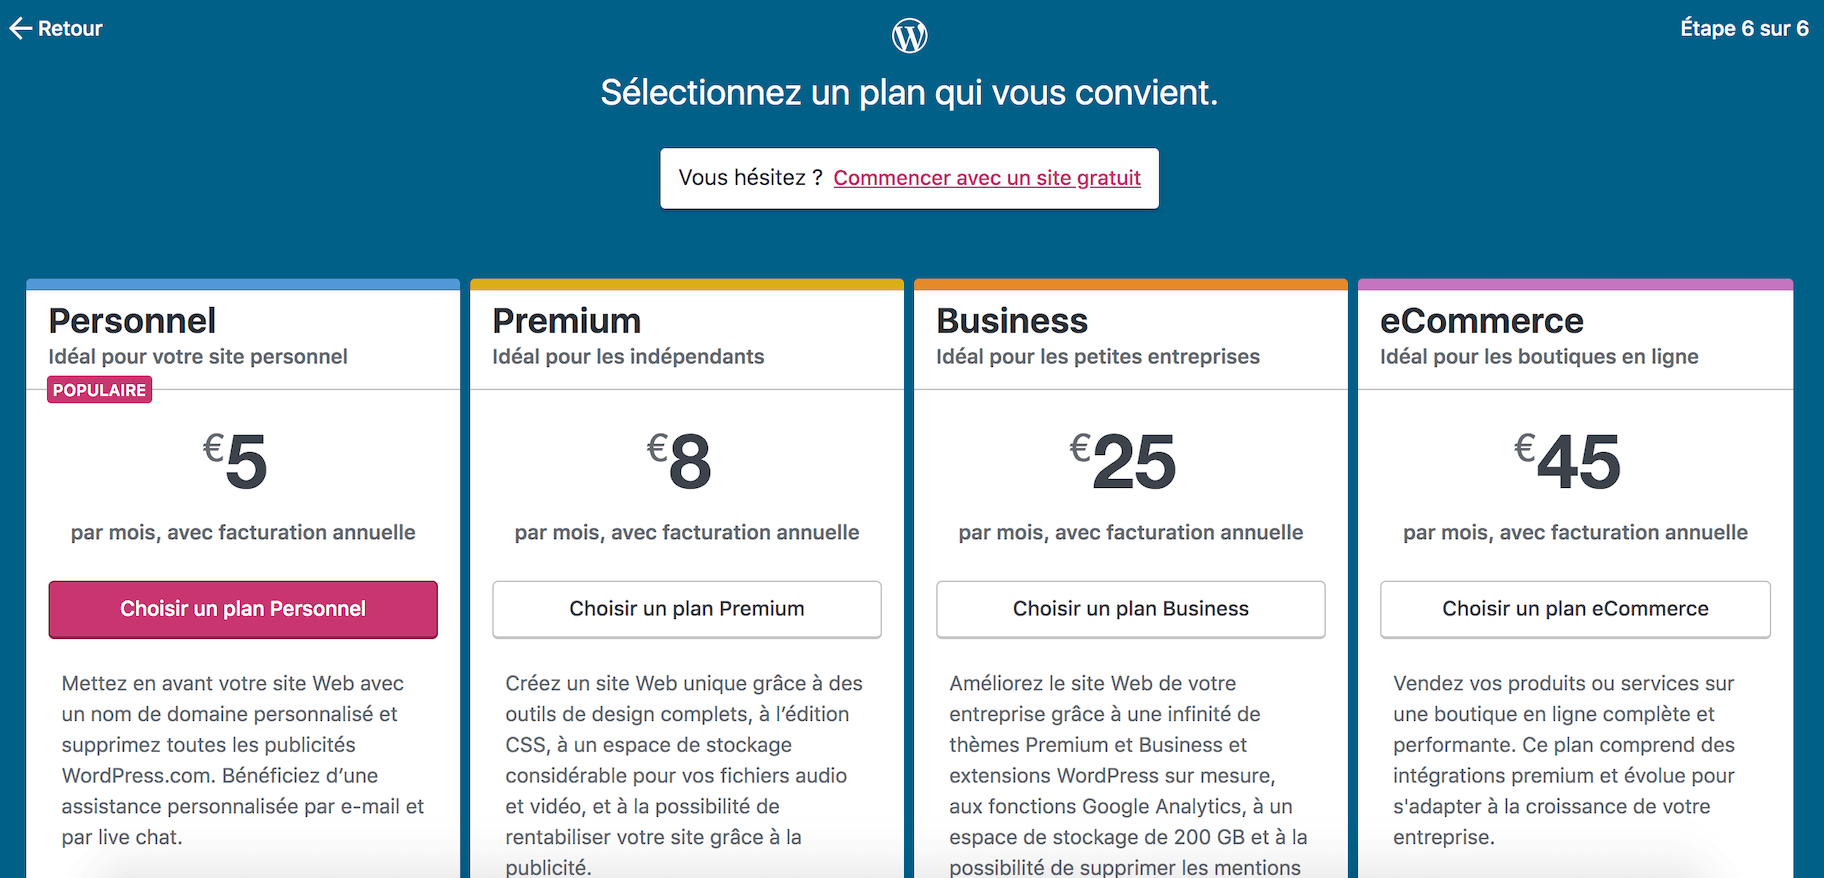 Blog payant sur WordPress